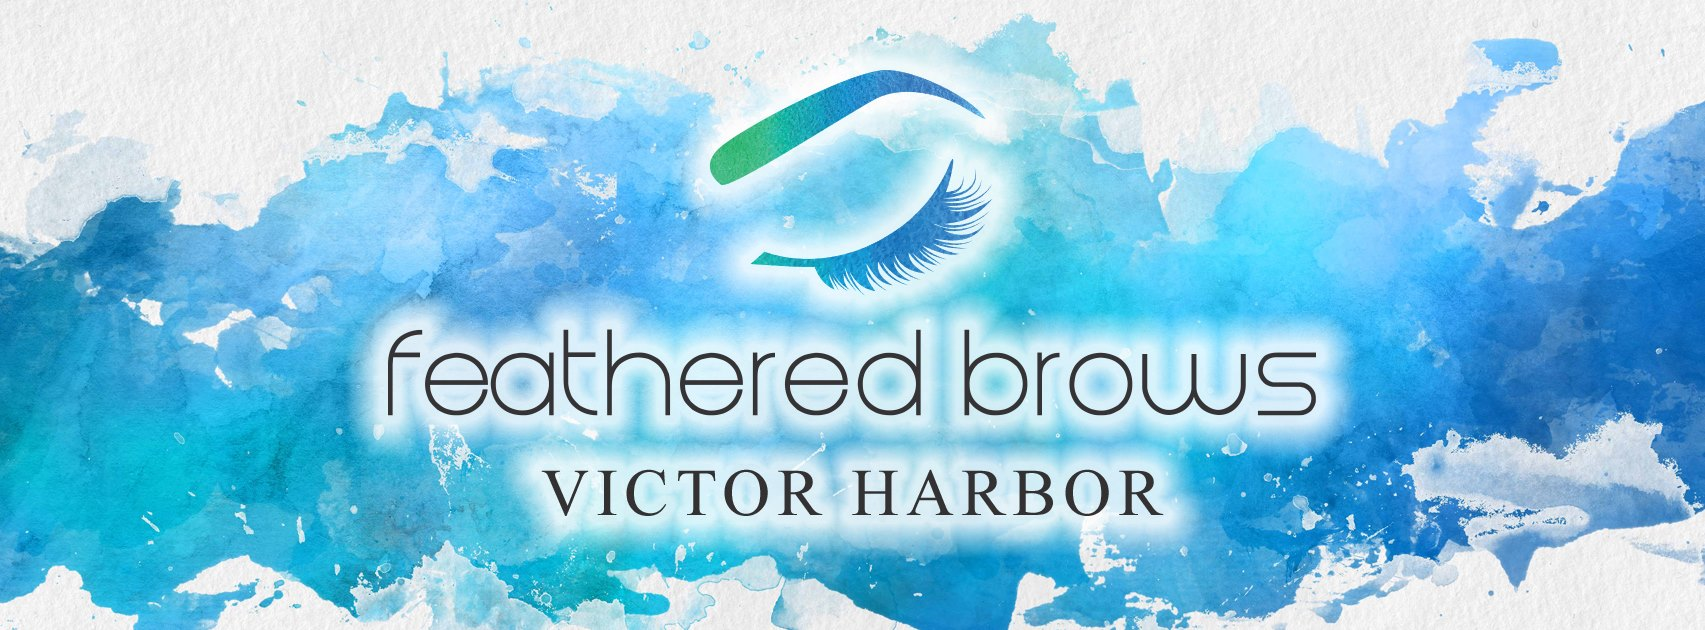 Feathered Eyebrows Victor Harbor - 7 Ocean St0438 000 855